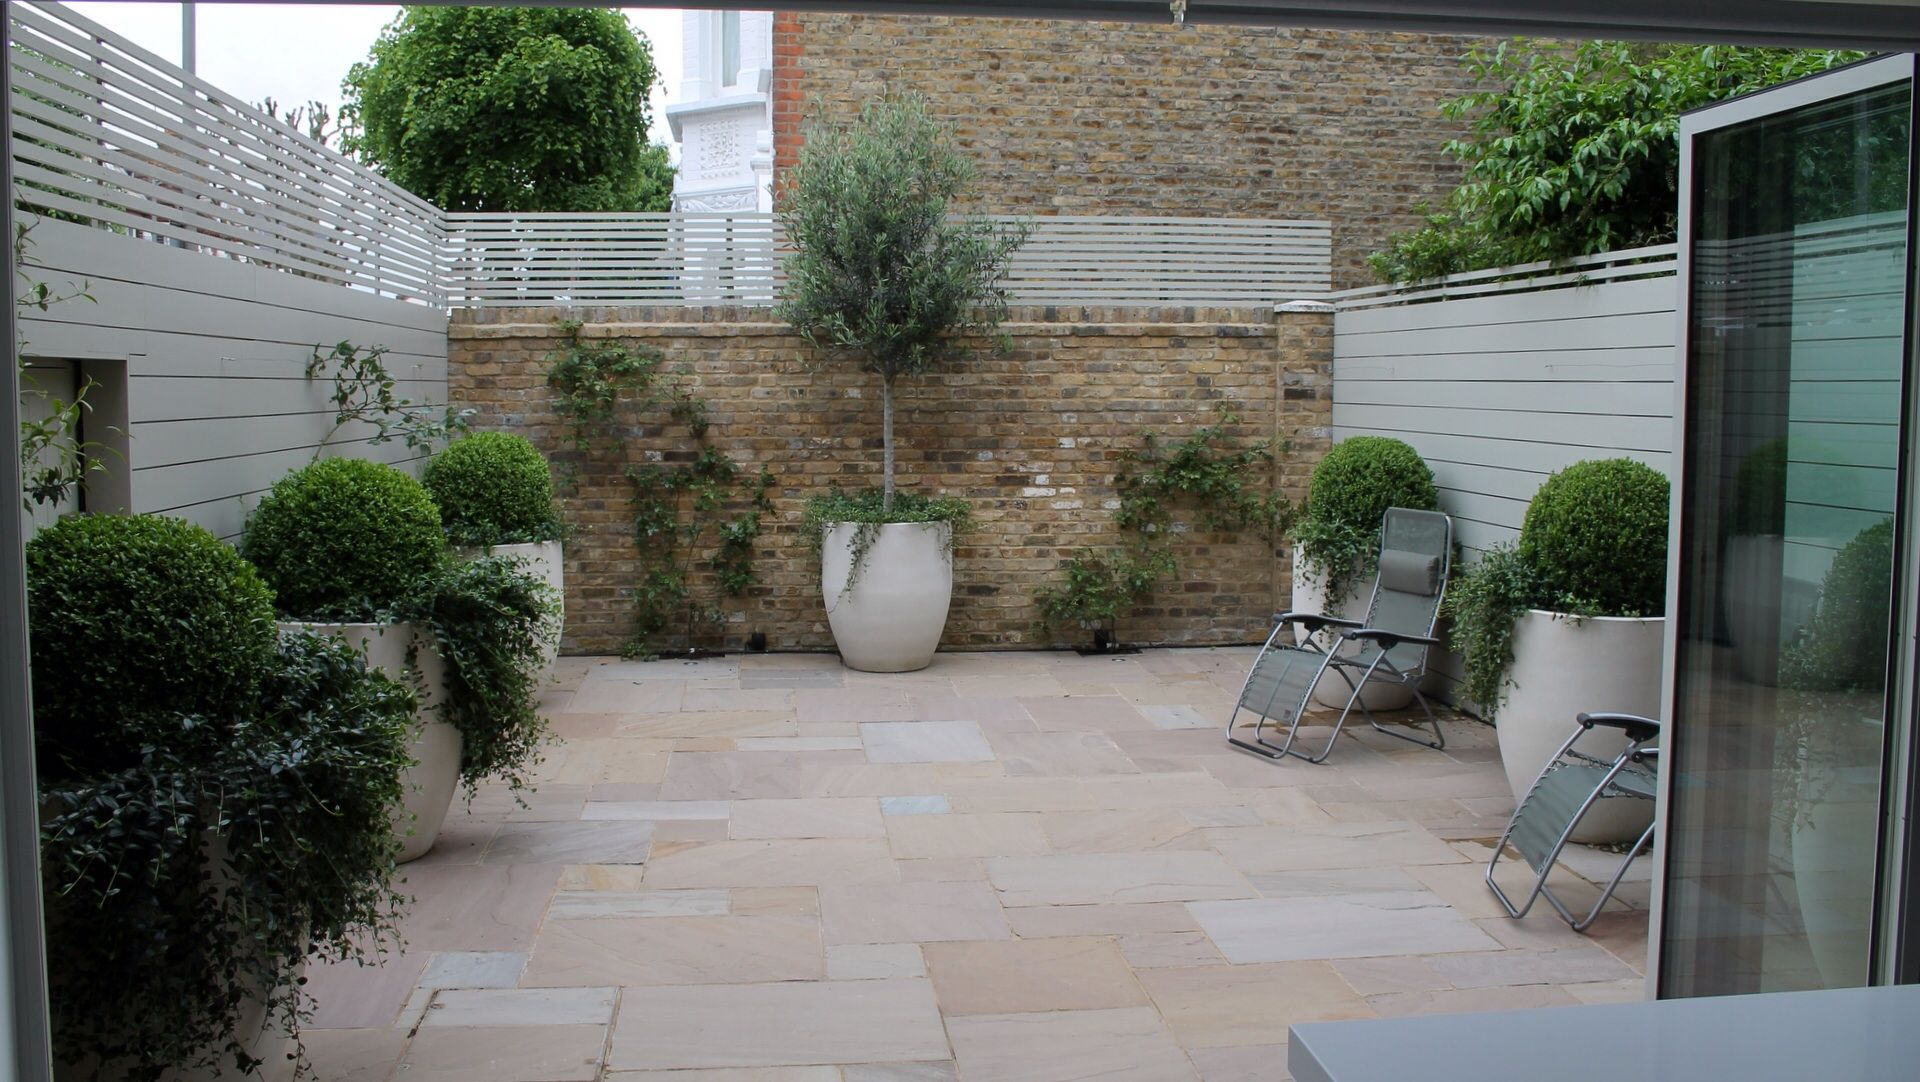 Lovely courtyard garden garden inspiration pinterest for Courtyard garden designs